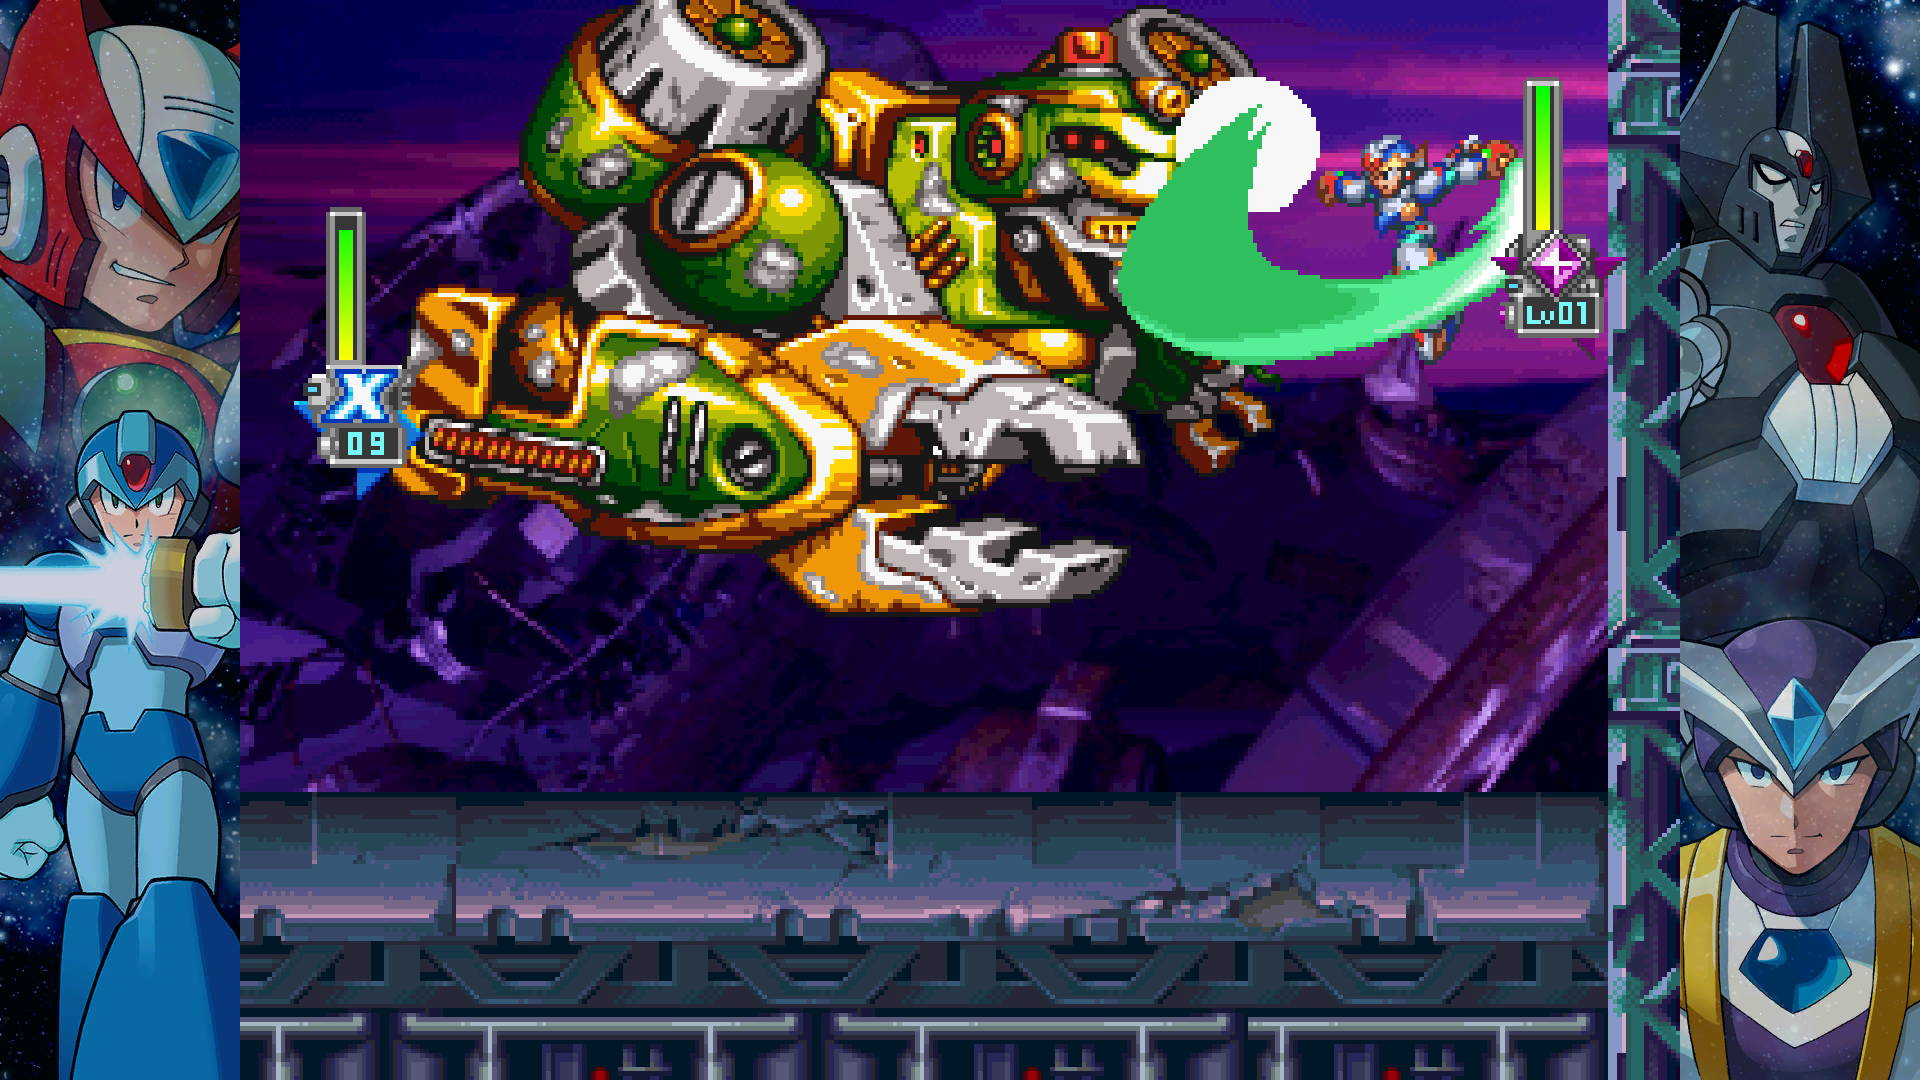 megamanxlegacycollection12_images_0007